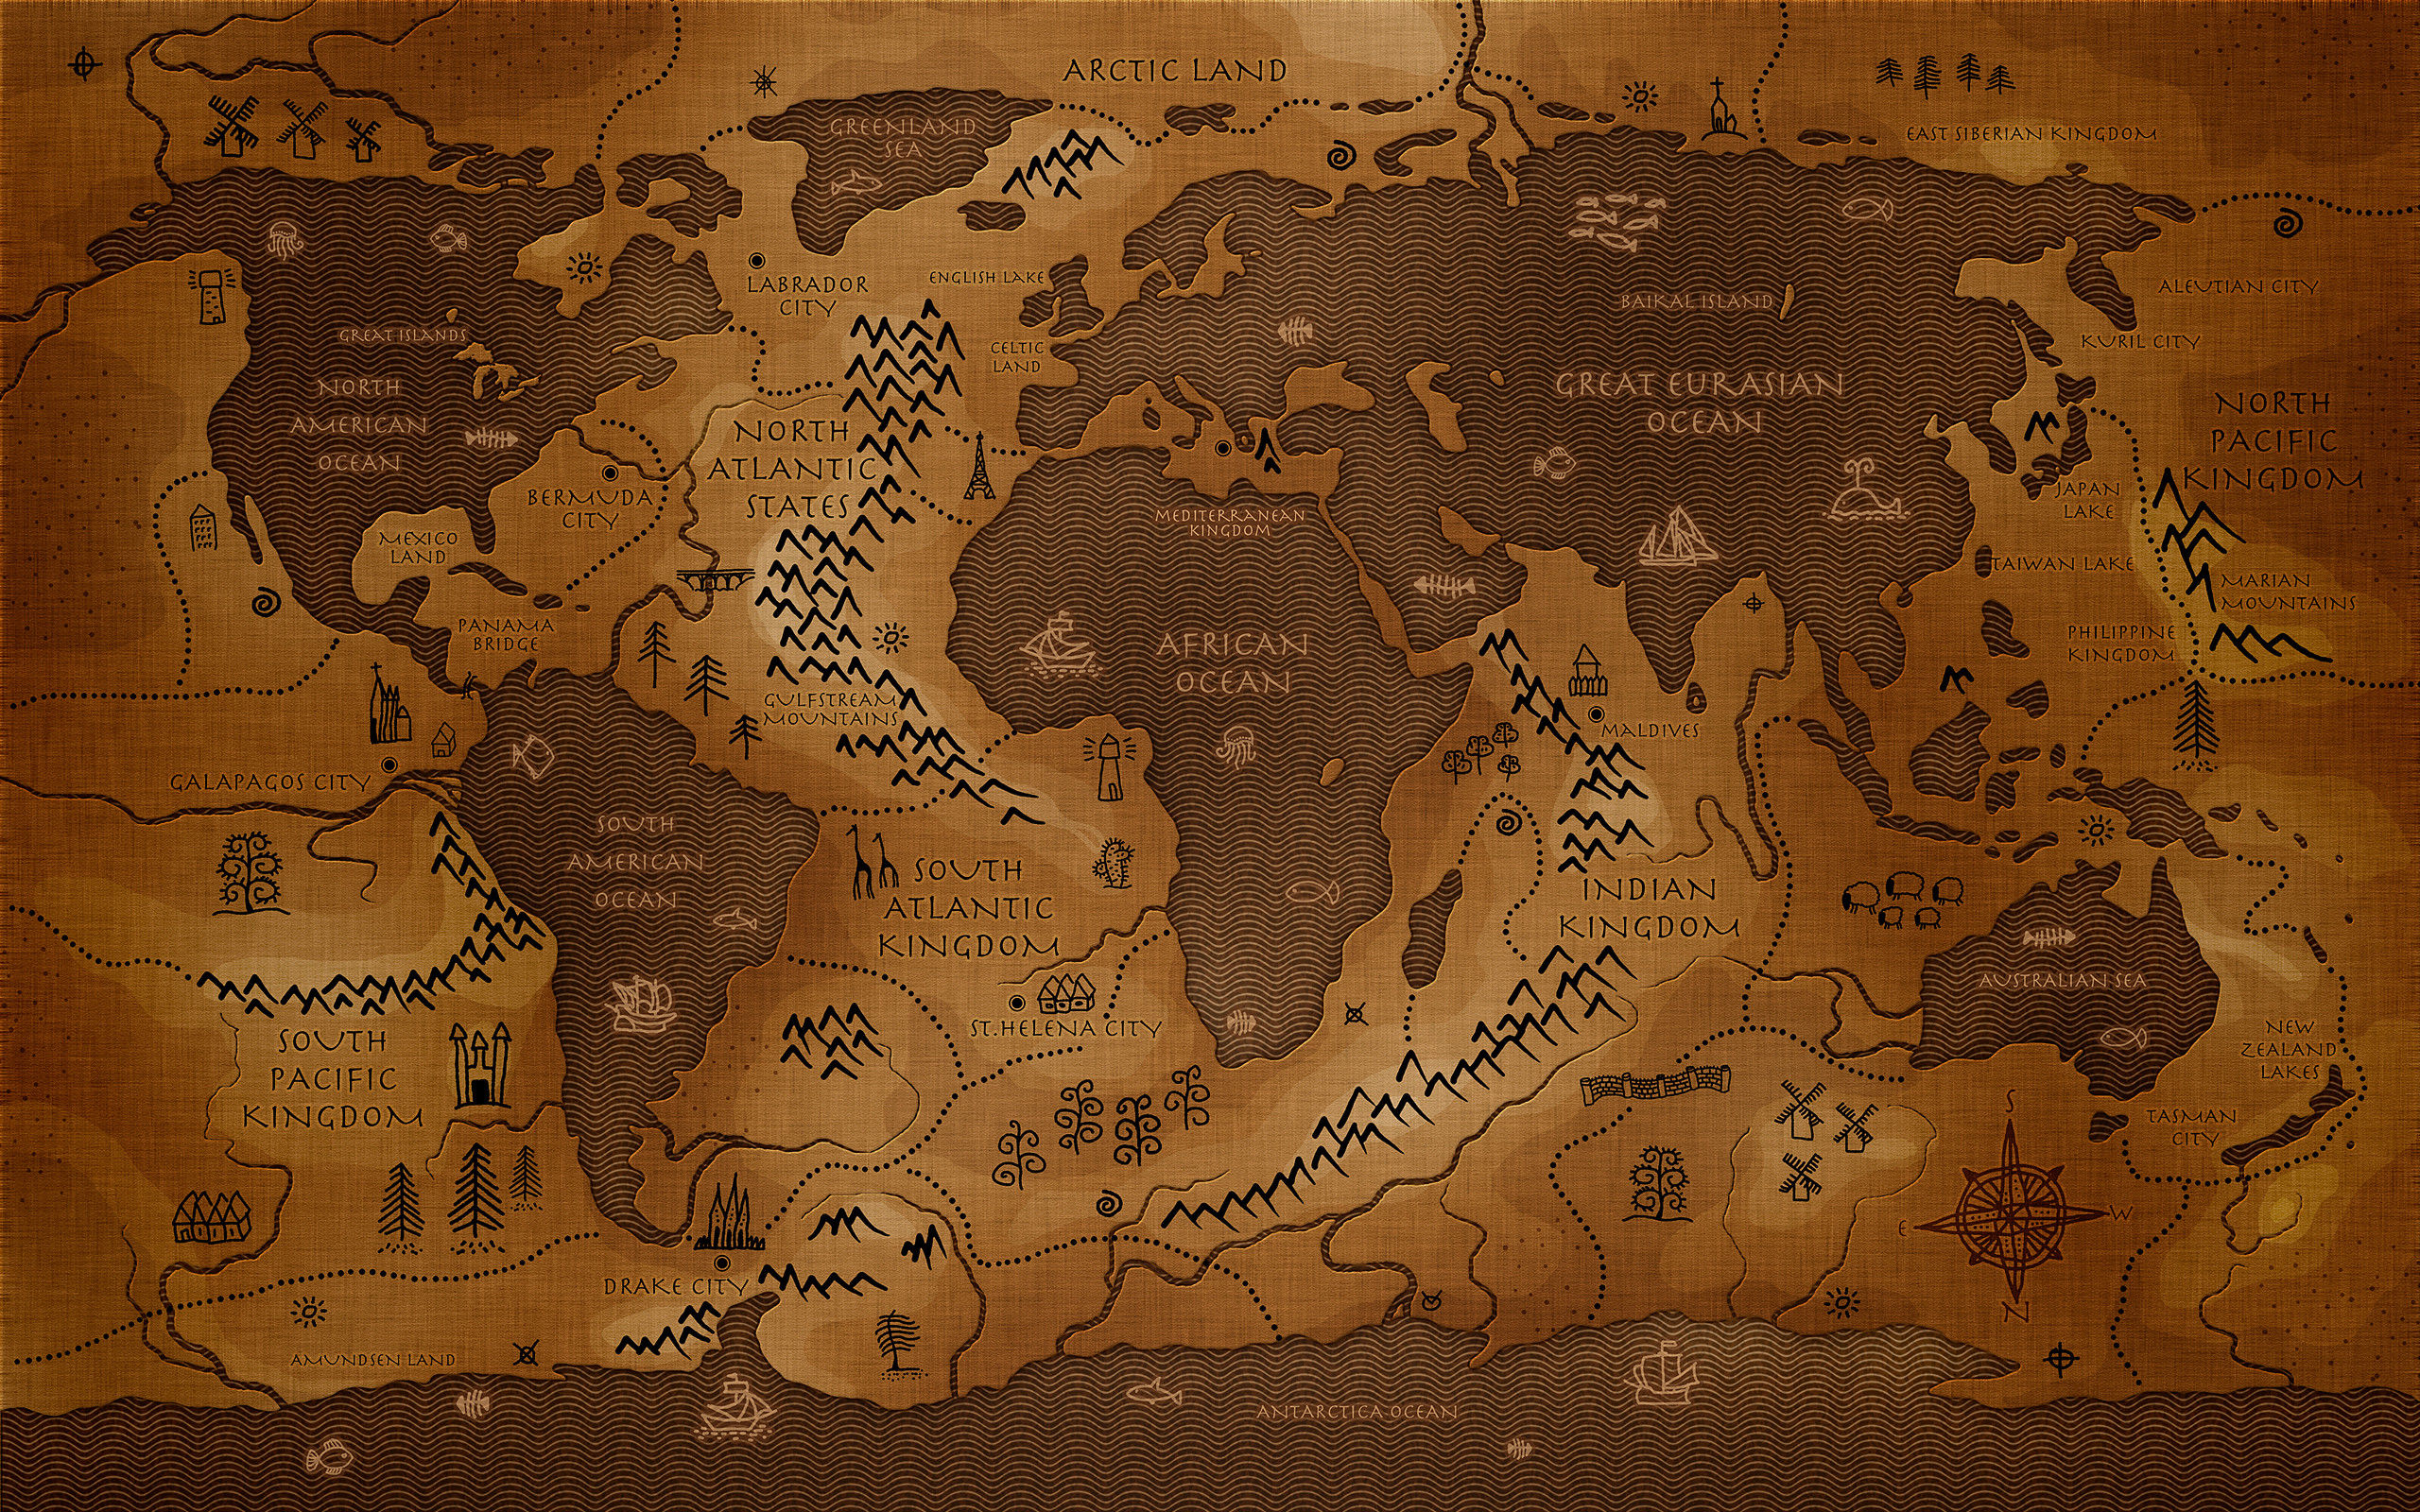 World map wallpapers high resolution 66 background pictures 3500x2085 world map political country and capitals free download new world map wallpapers high resolution wallpaper cave valid map with countries and gumiabroncs Choice Image